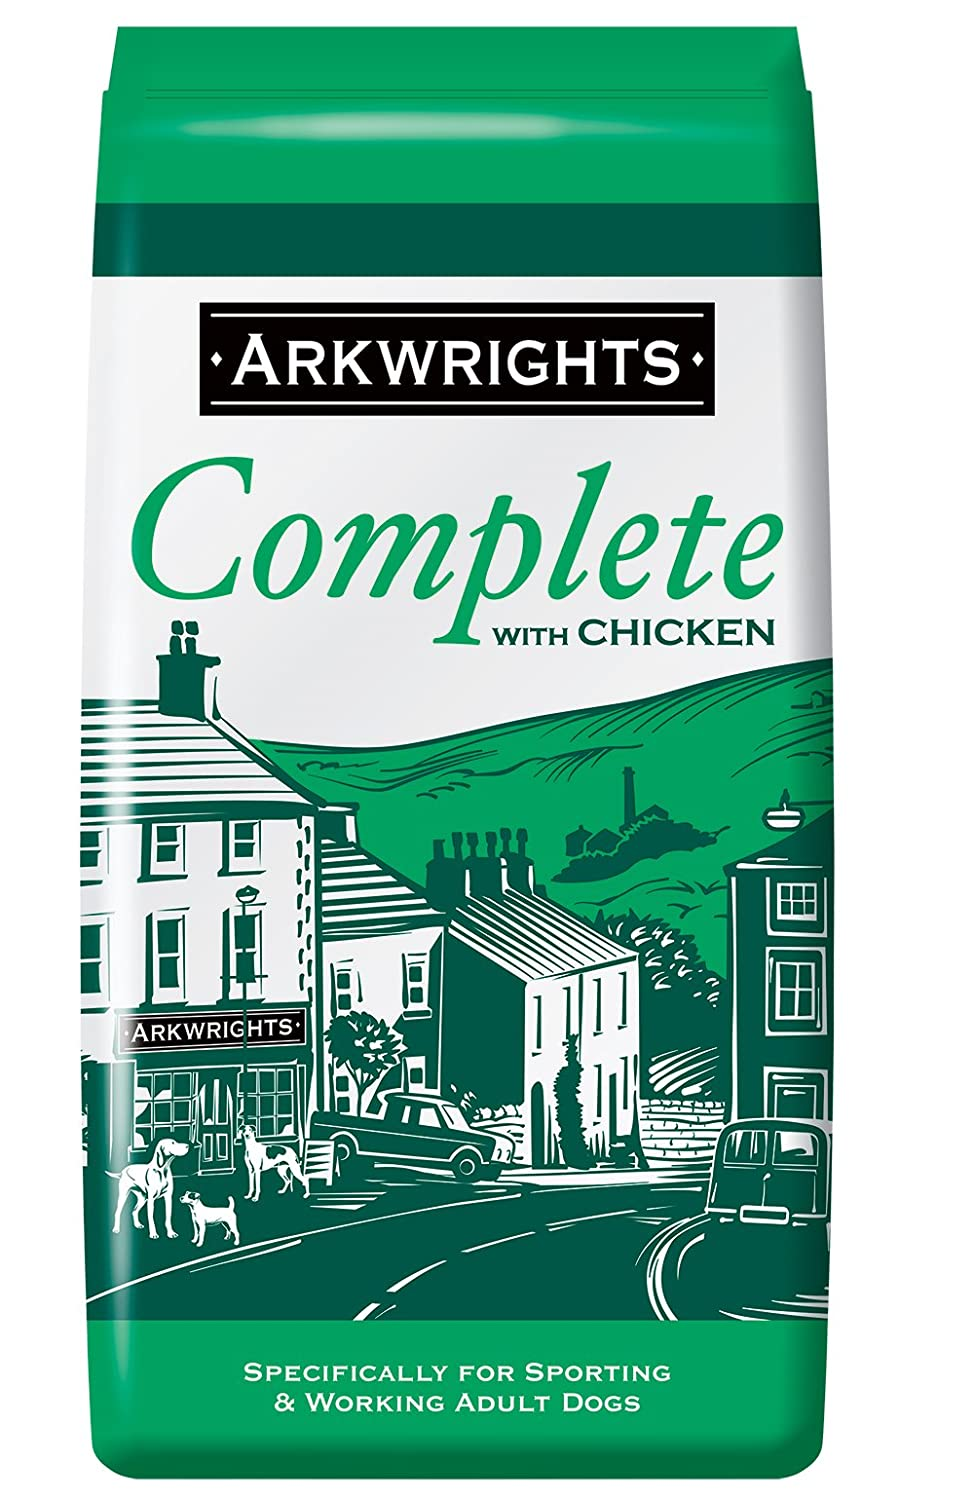 Arkwrights Dog Food Free Delivery